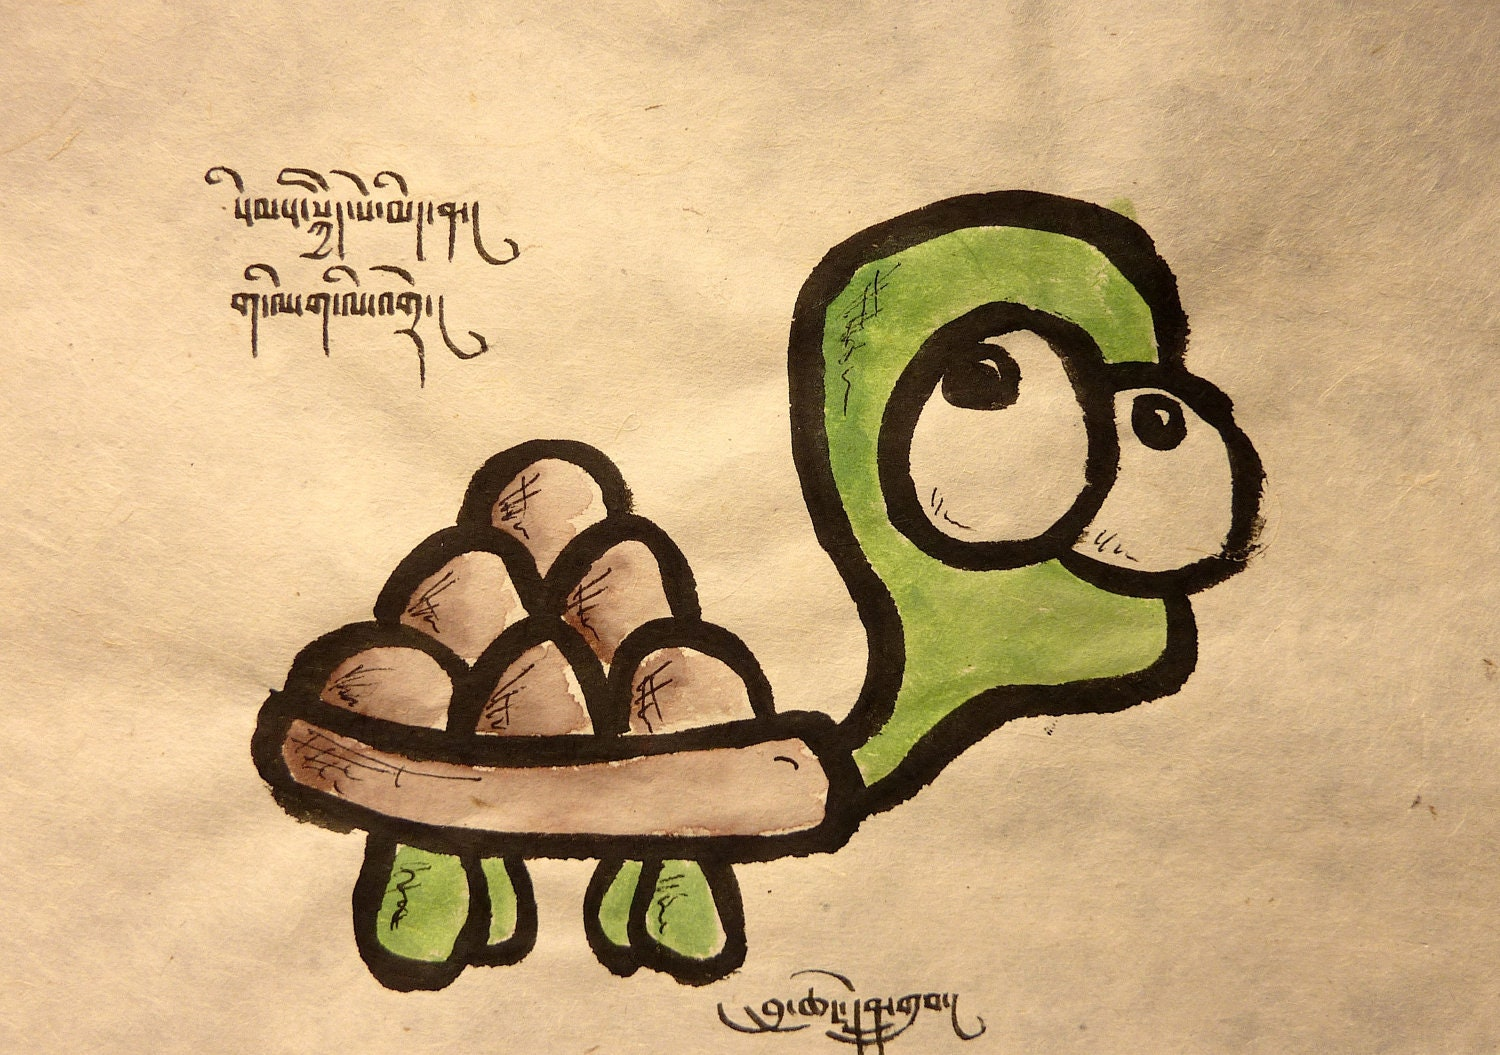 Easy cute turtle drawings - photo#26